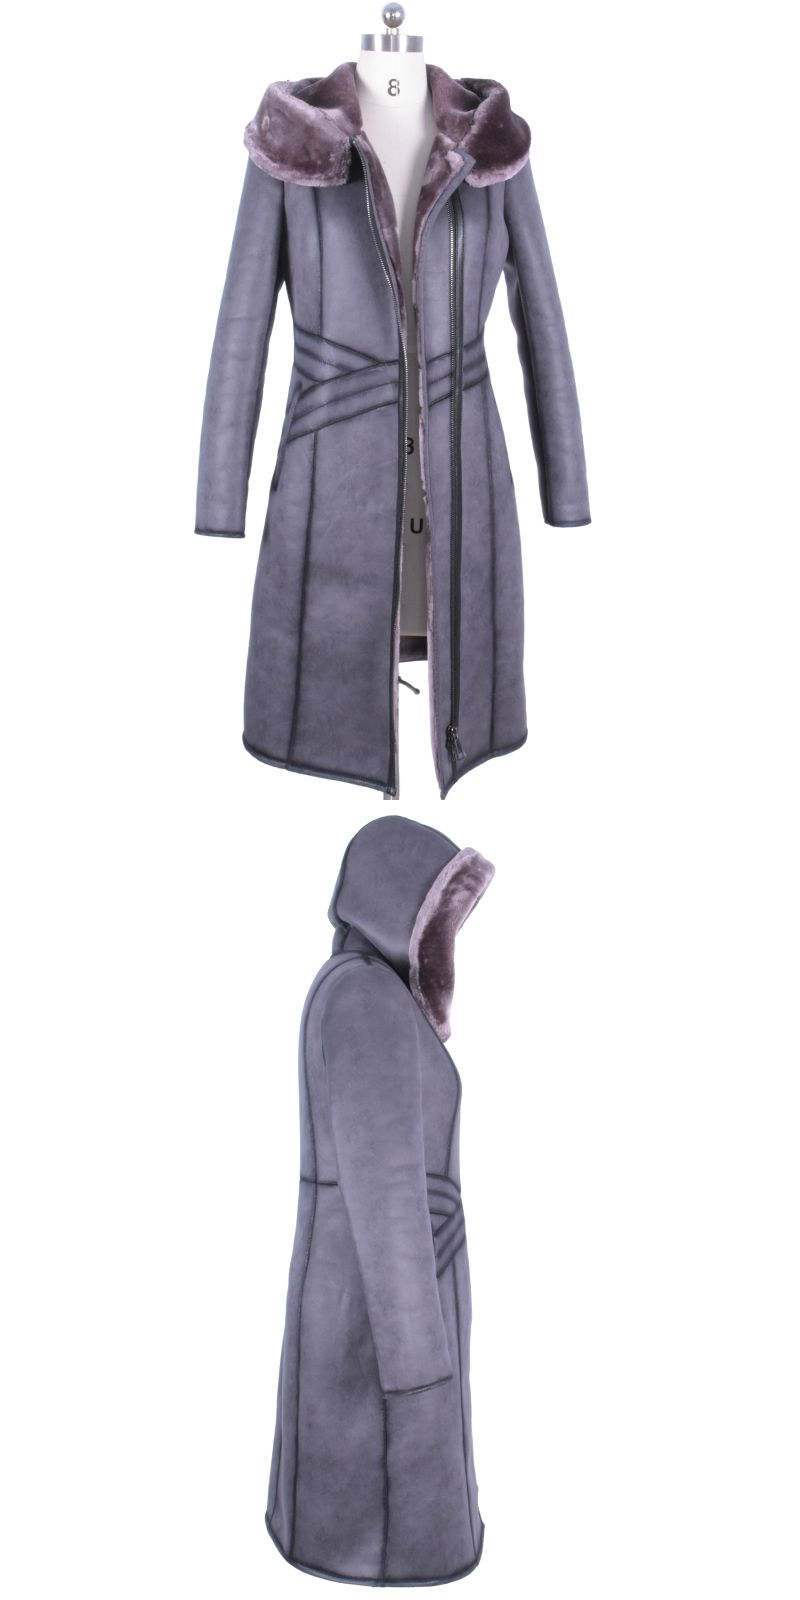 0255287ebe6 2017 Direct supply from factory Brands DEMOSI fashion new style Cold  resistant winter faux suede women s